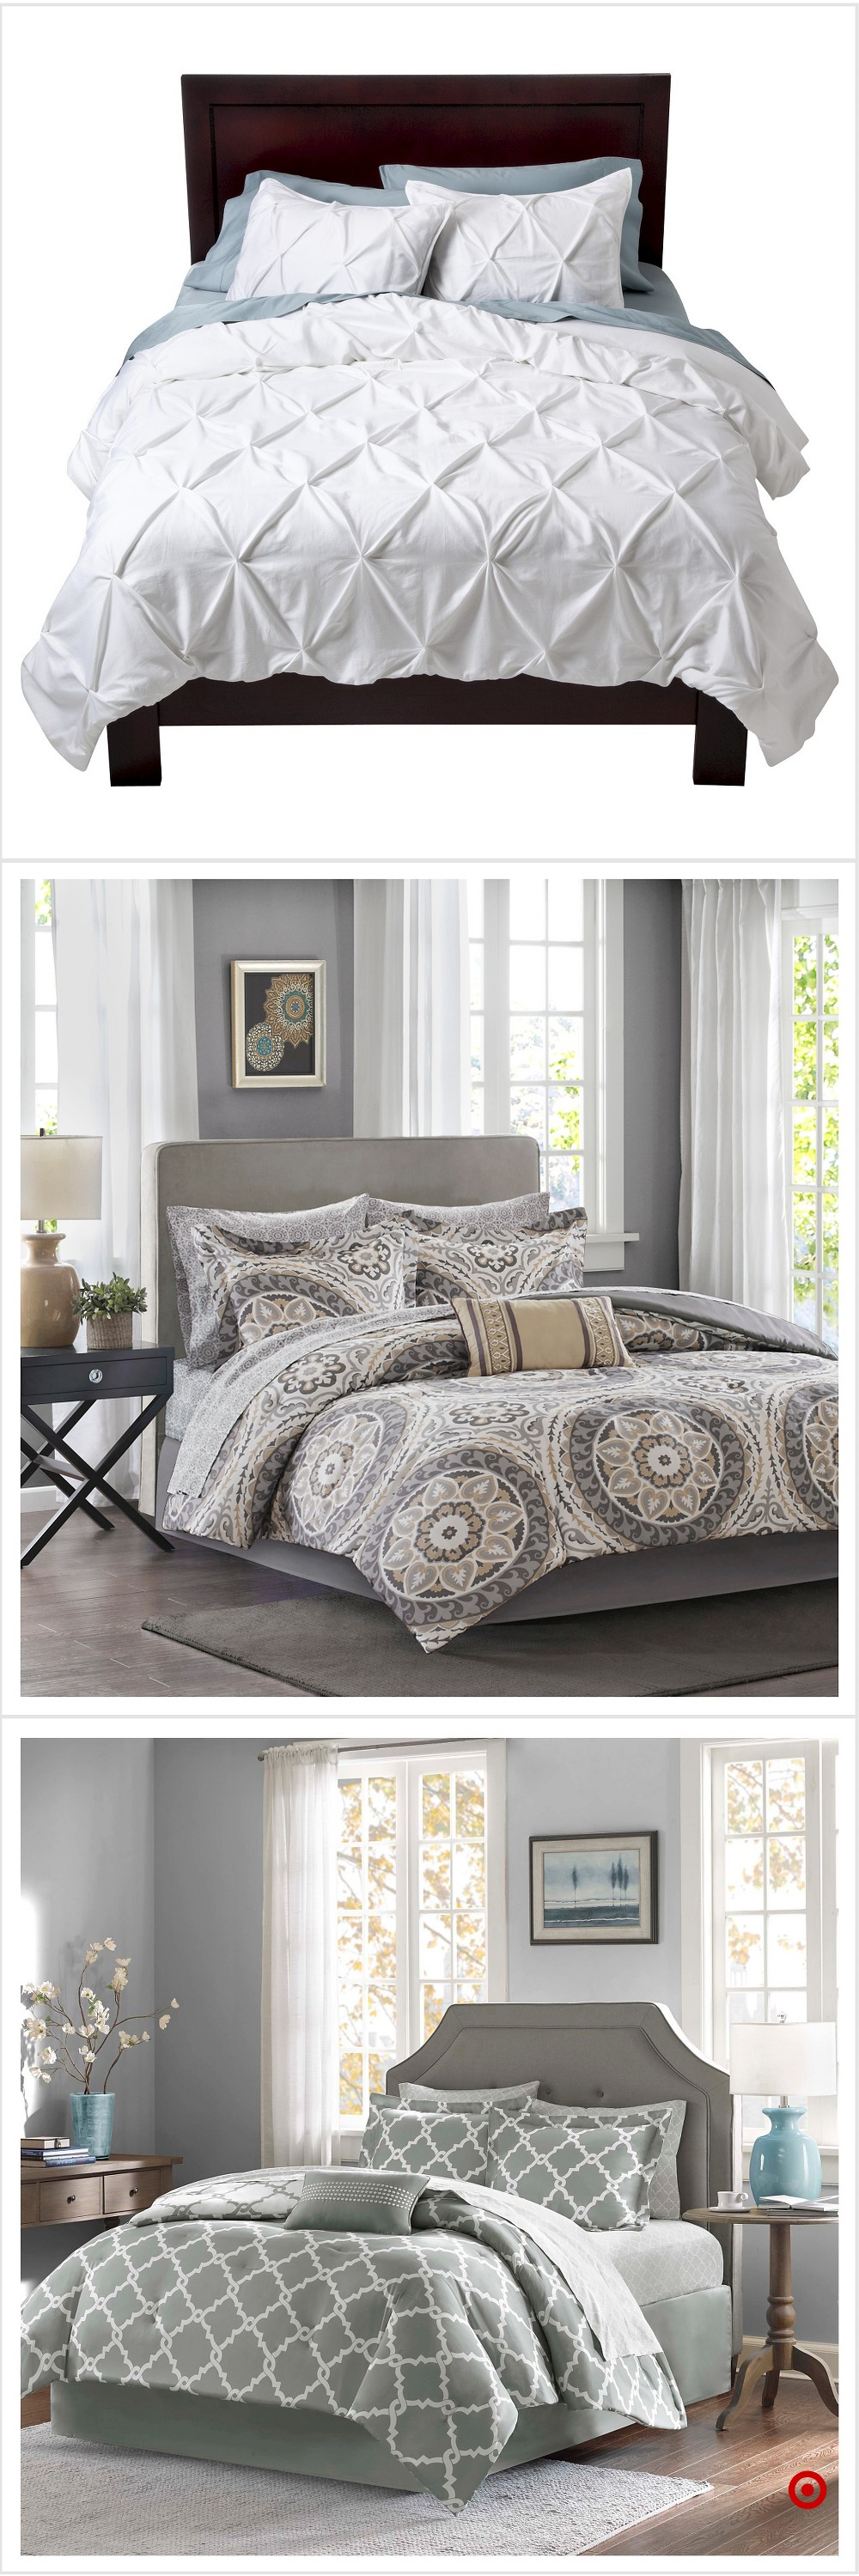 shop target for comforter sets you will love at great low